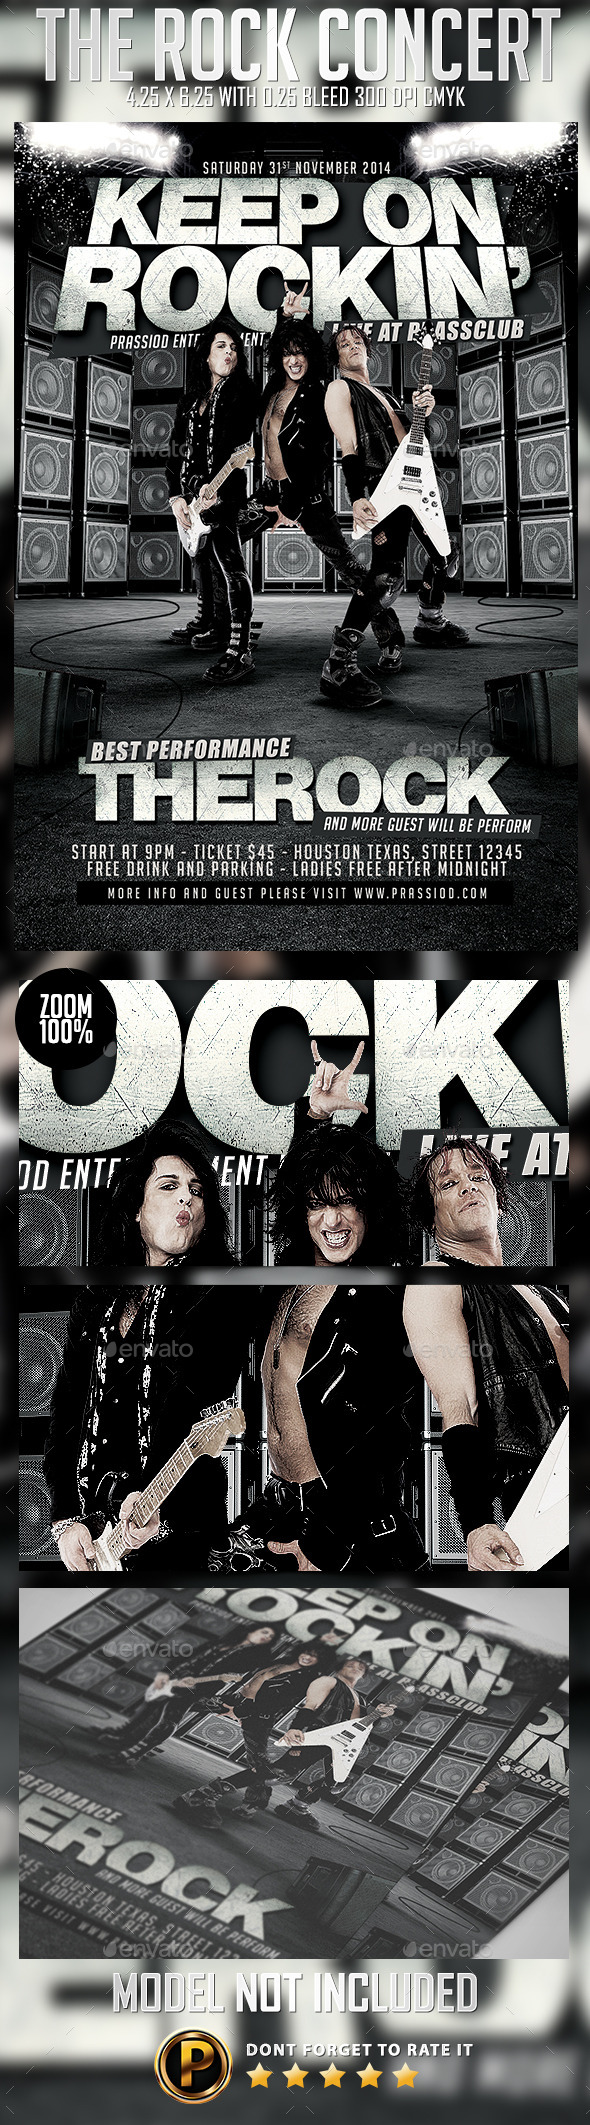 The Rock Concert Flyer Template - Concerts Events